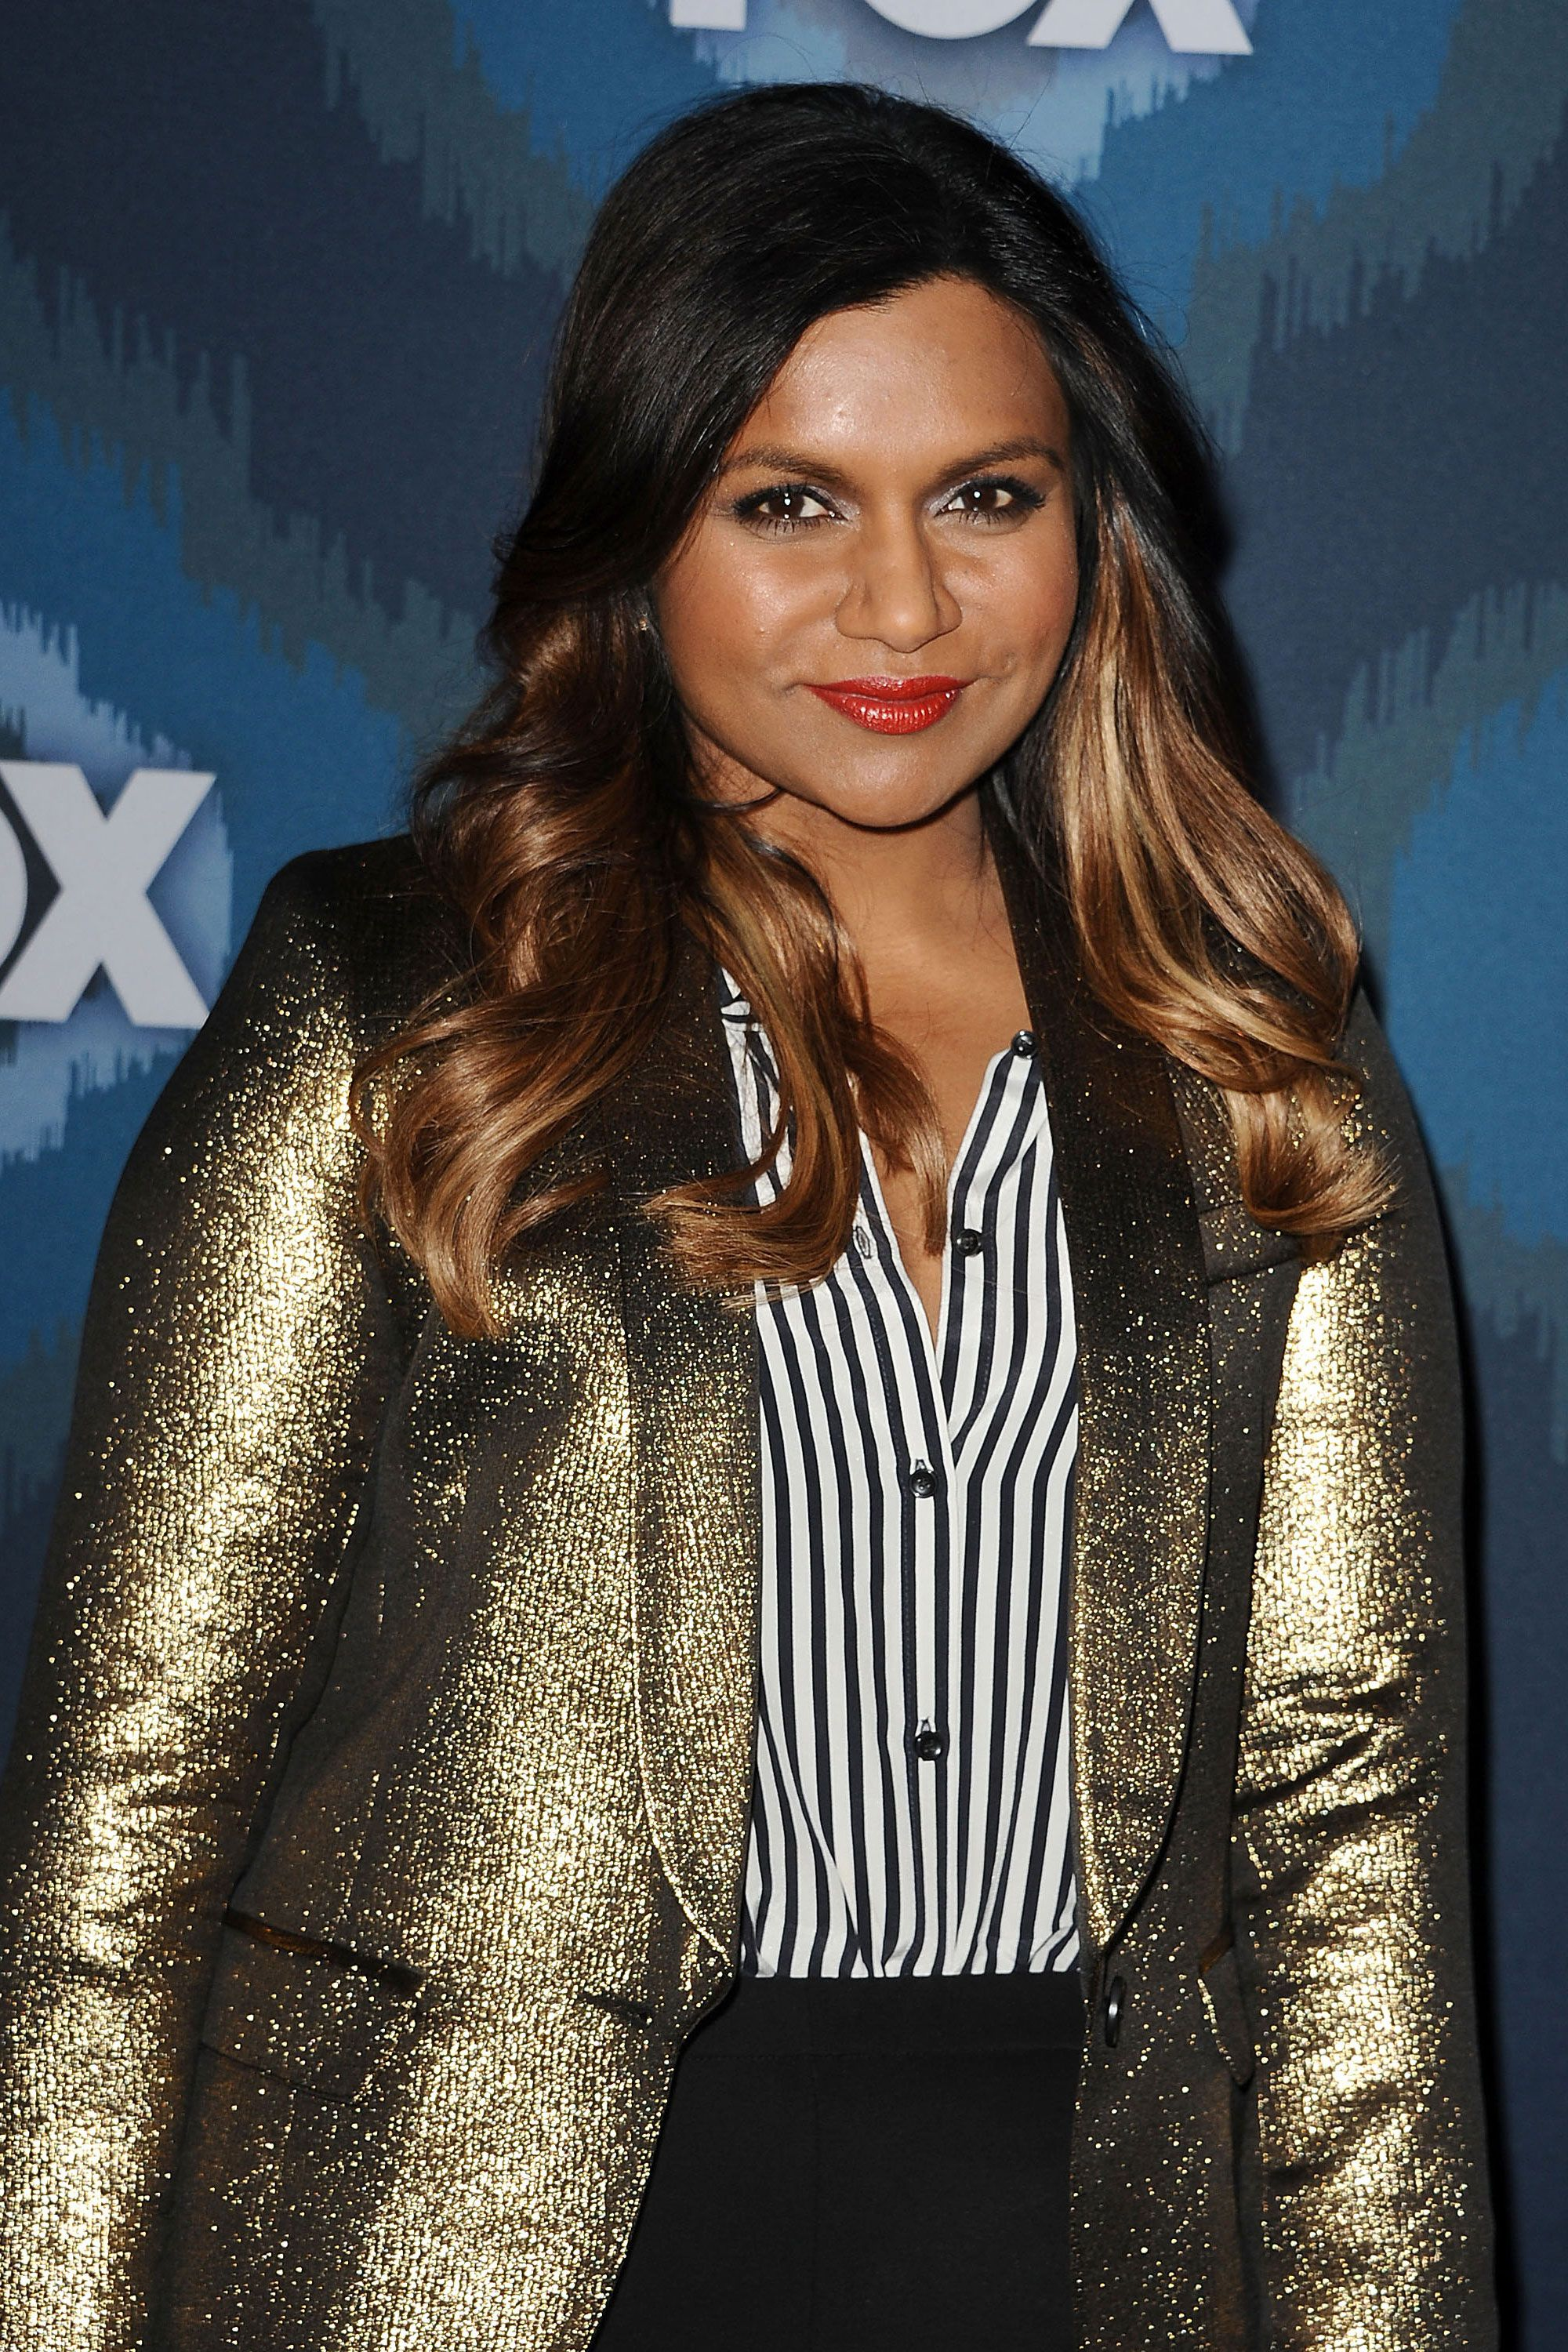 The brunette beauty lightens up her tresses with honey highlights that pair nicely with her metallic blazer.